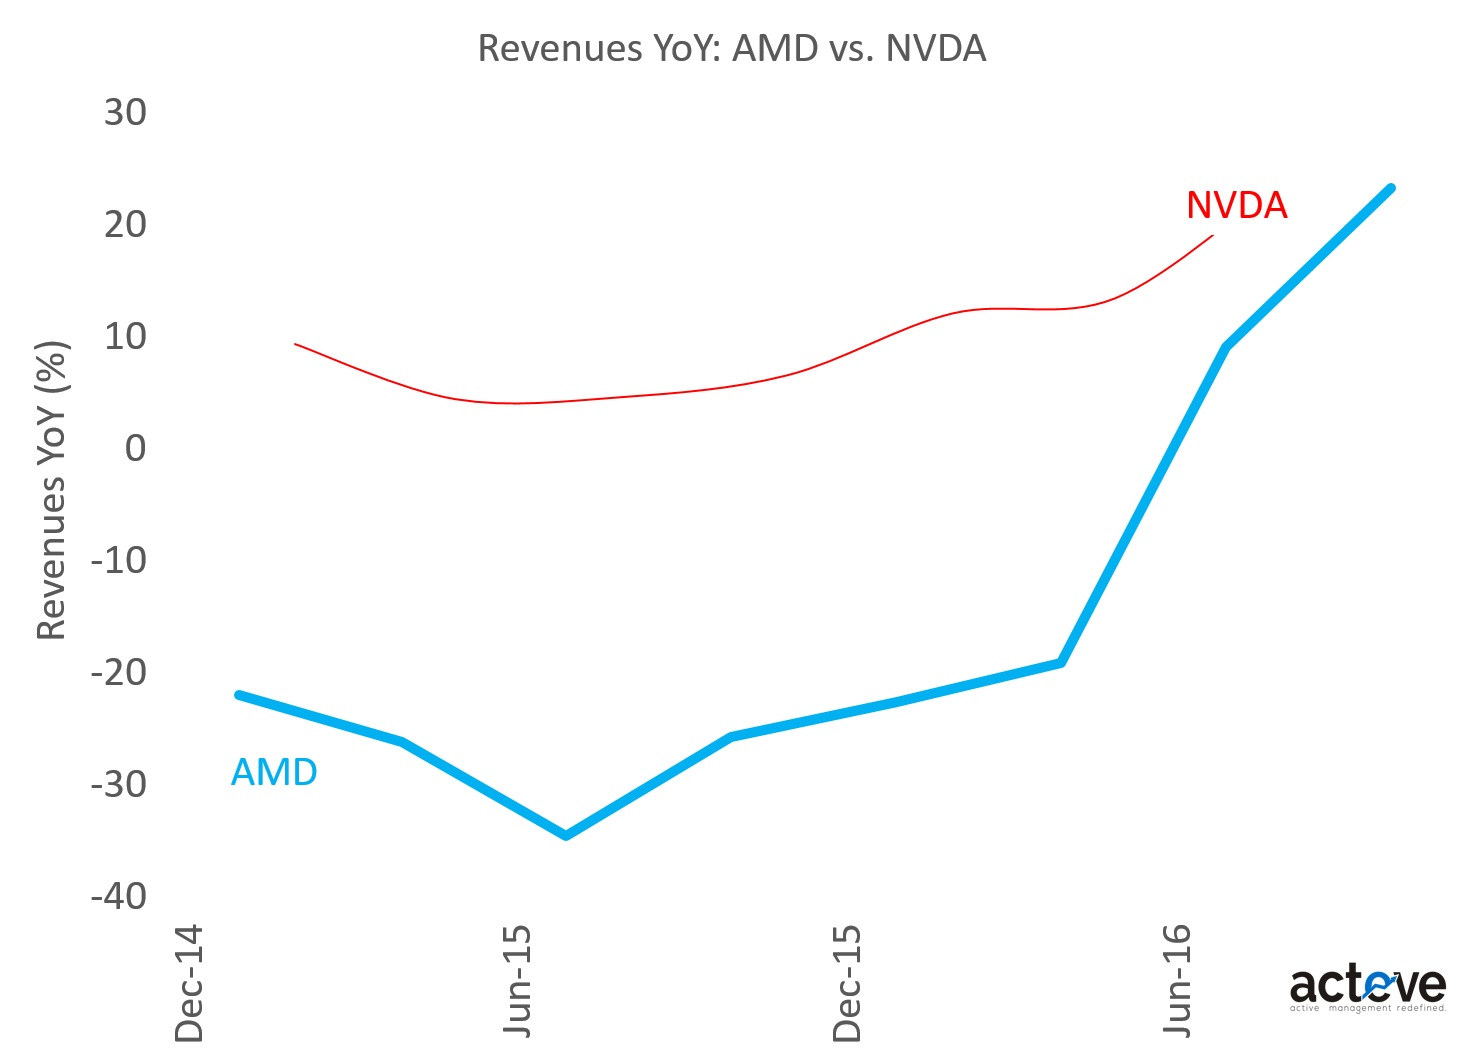 AMD vs. NVDA Revenues YoY